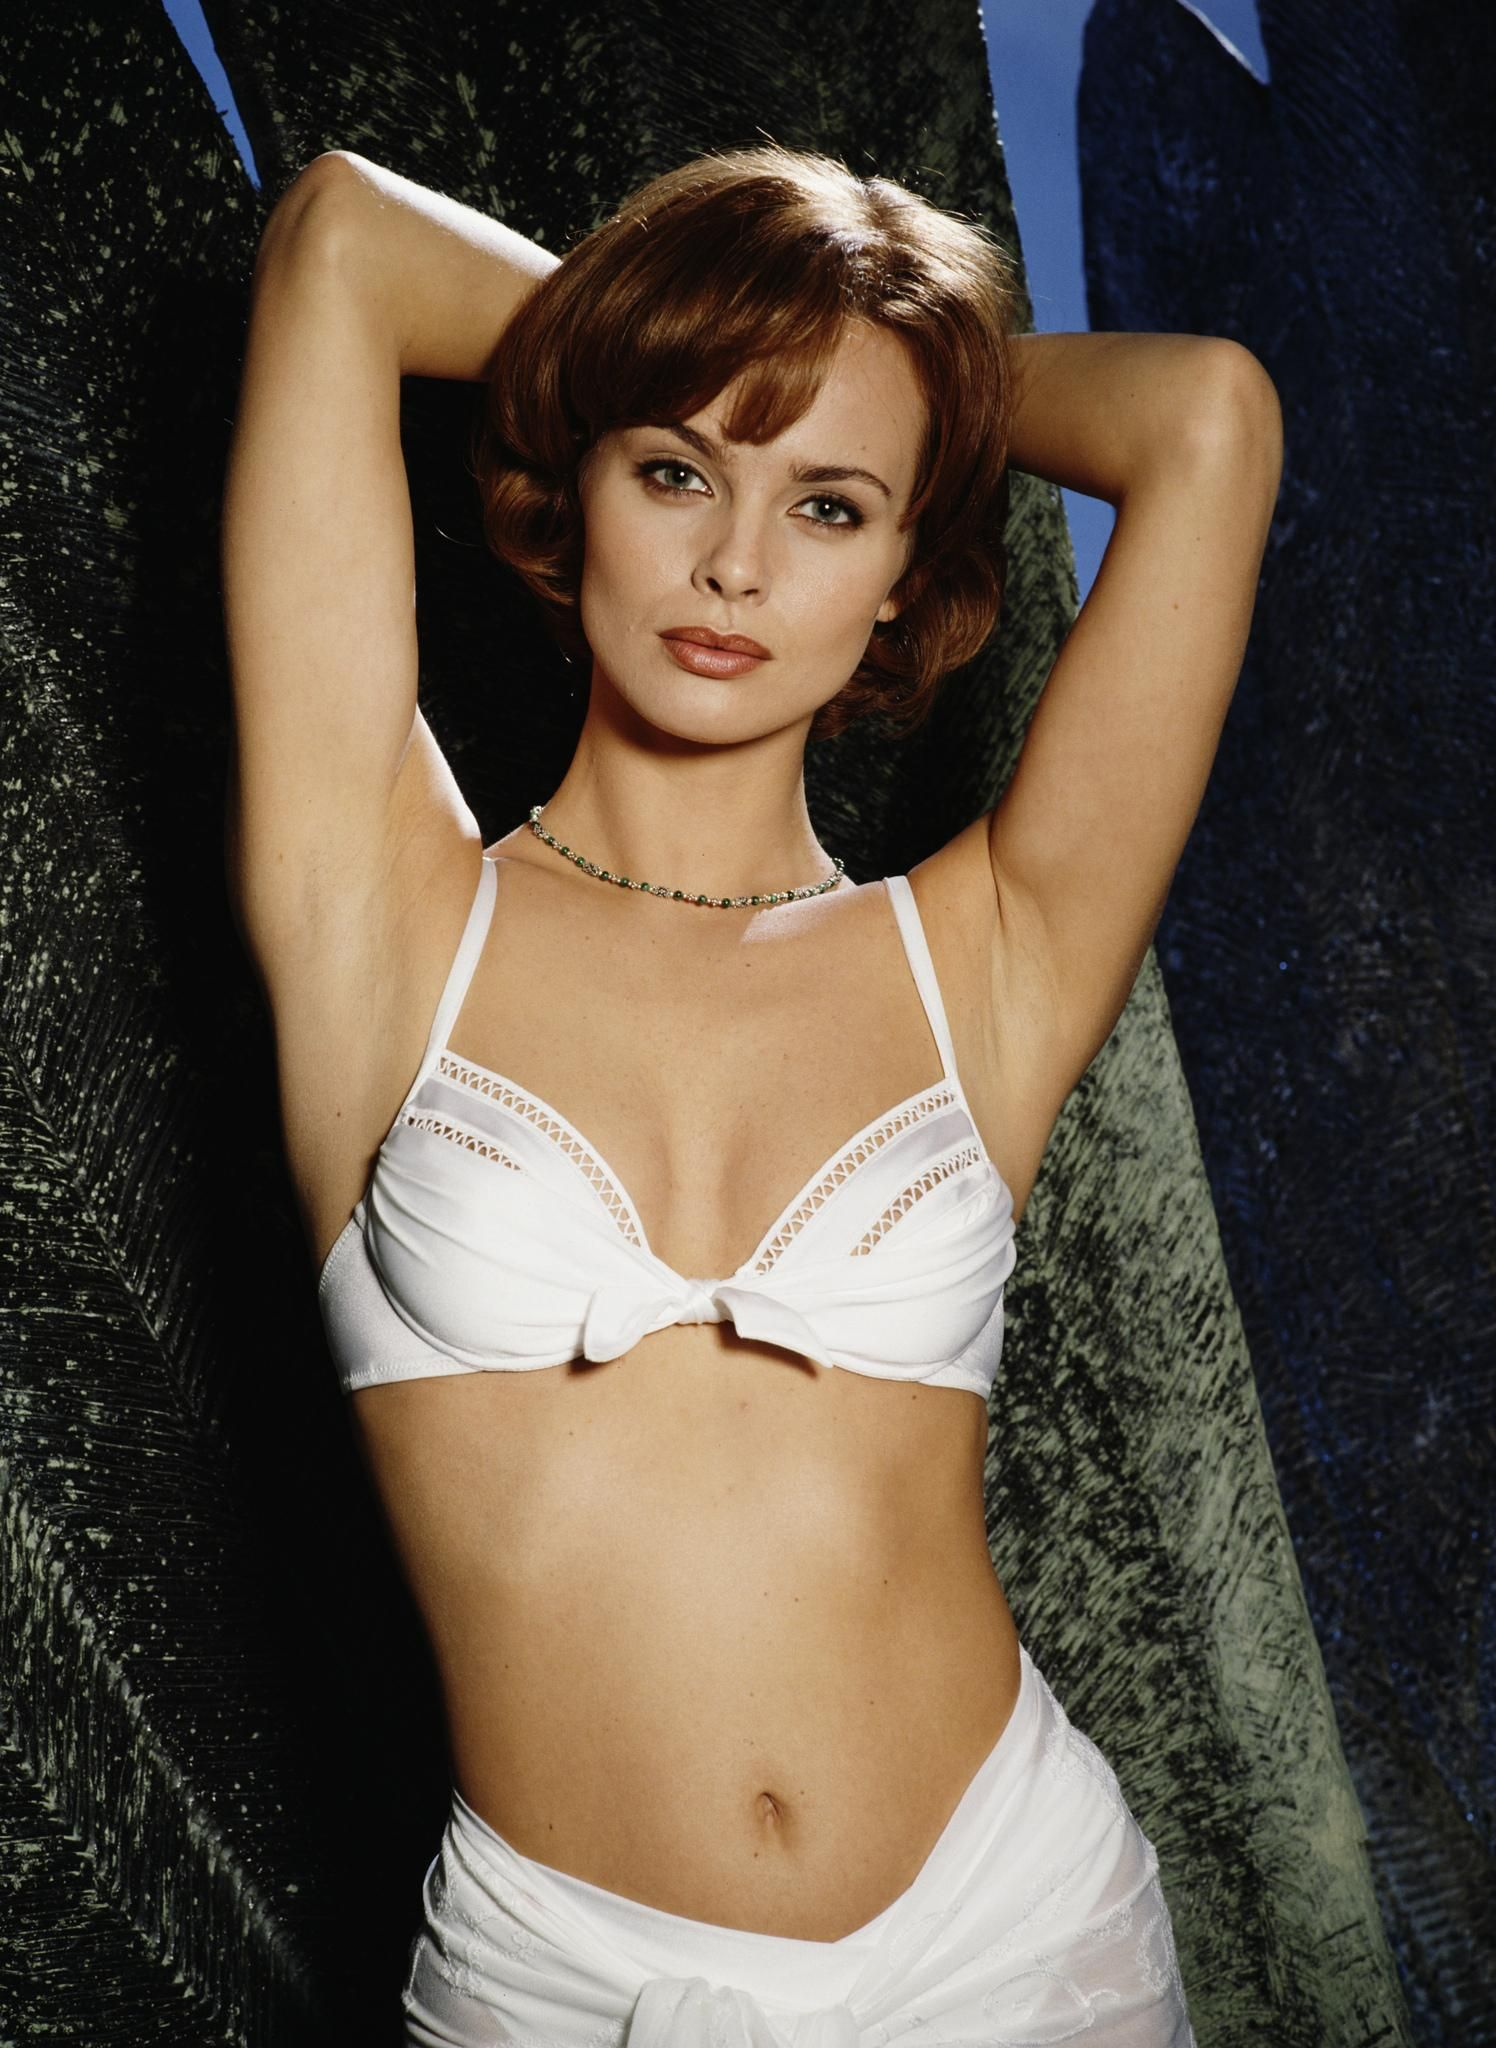 Assured, that Izabella Scorupco naked picture